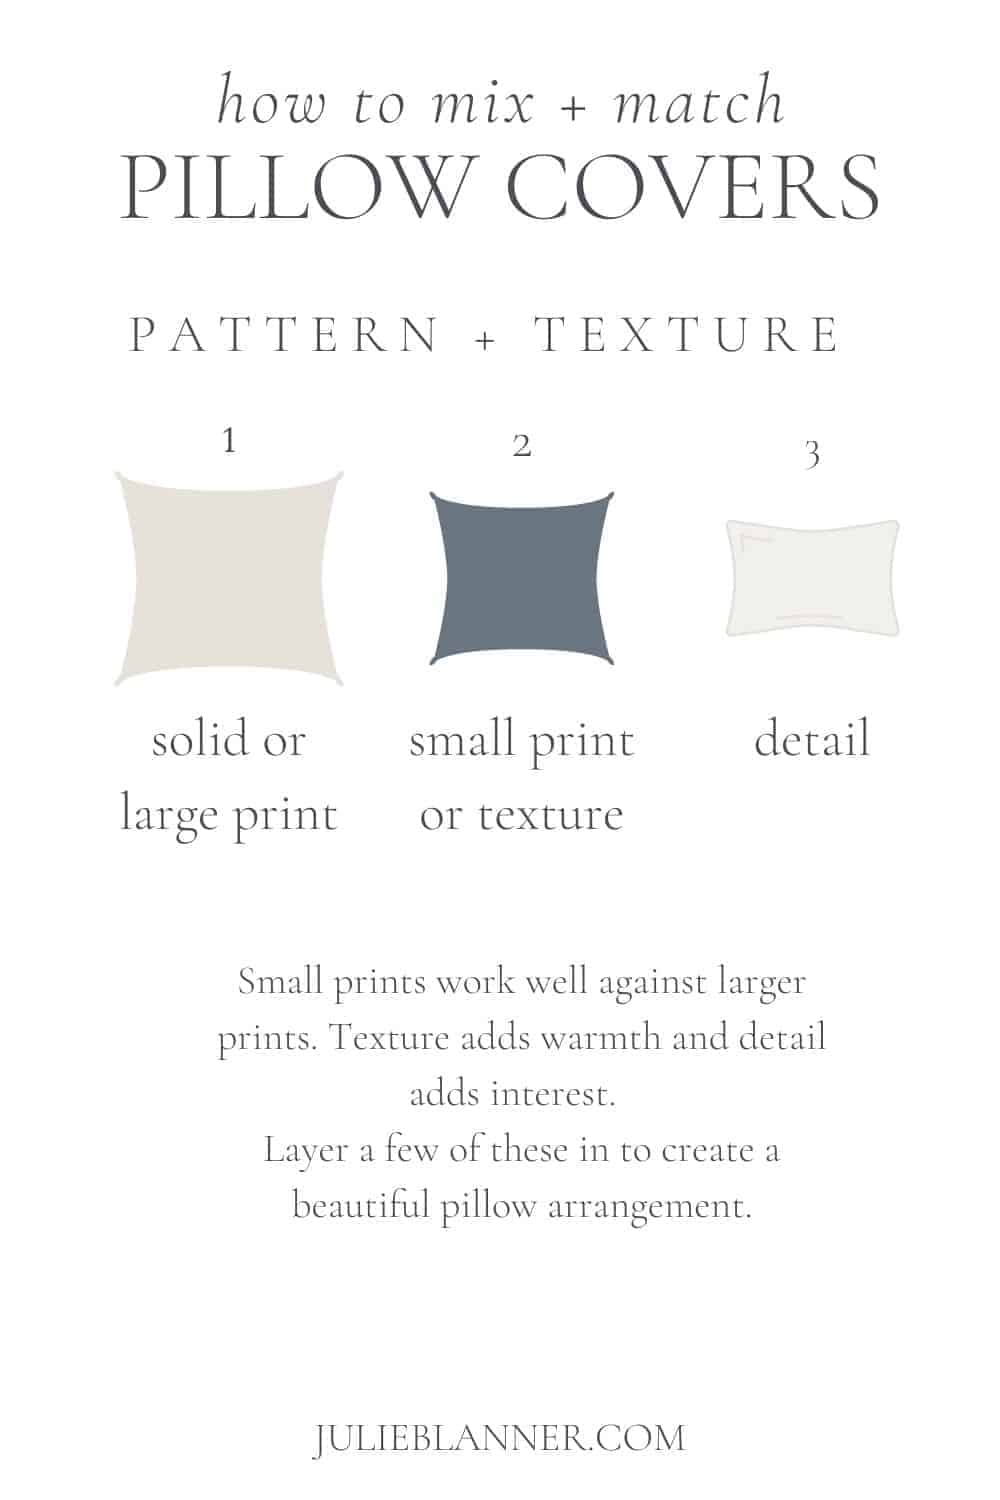 guide to mixing pillow covers